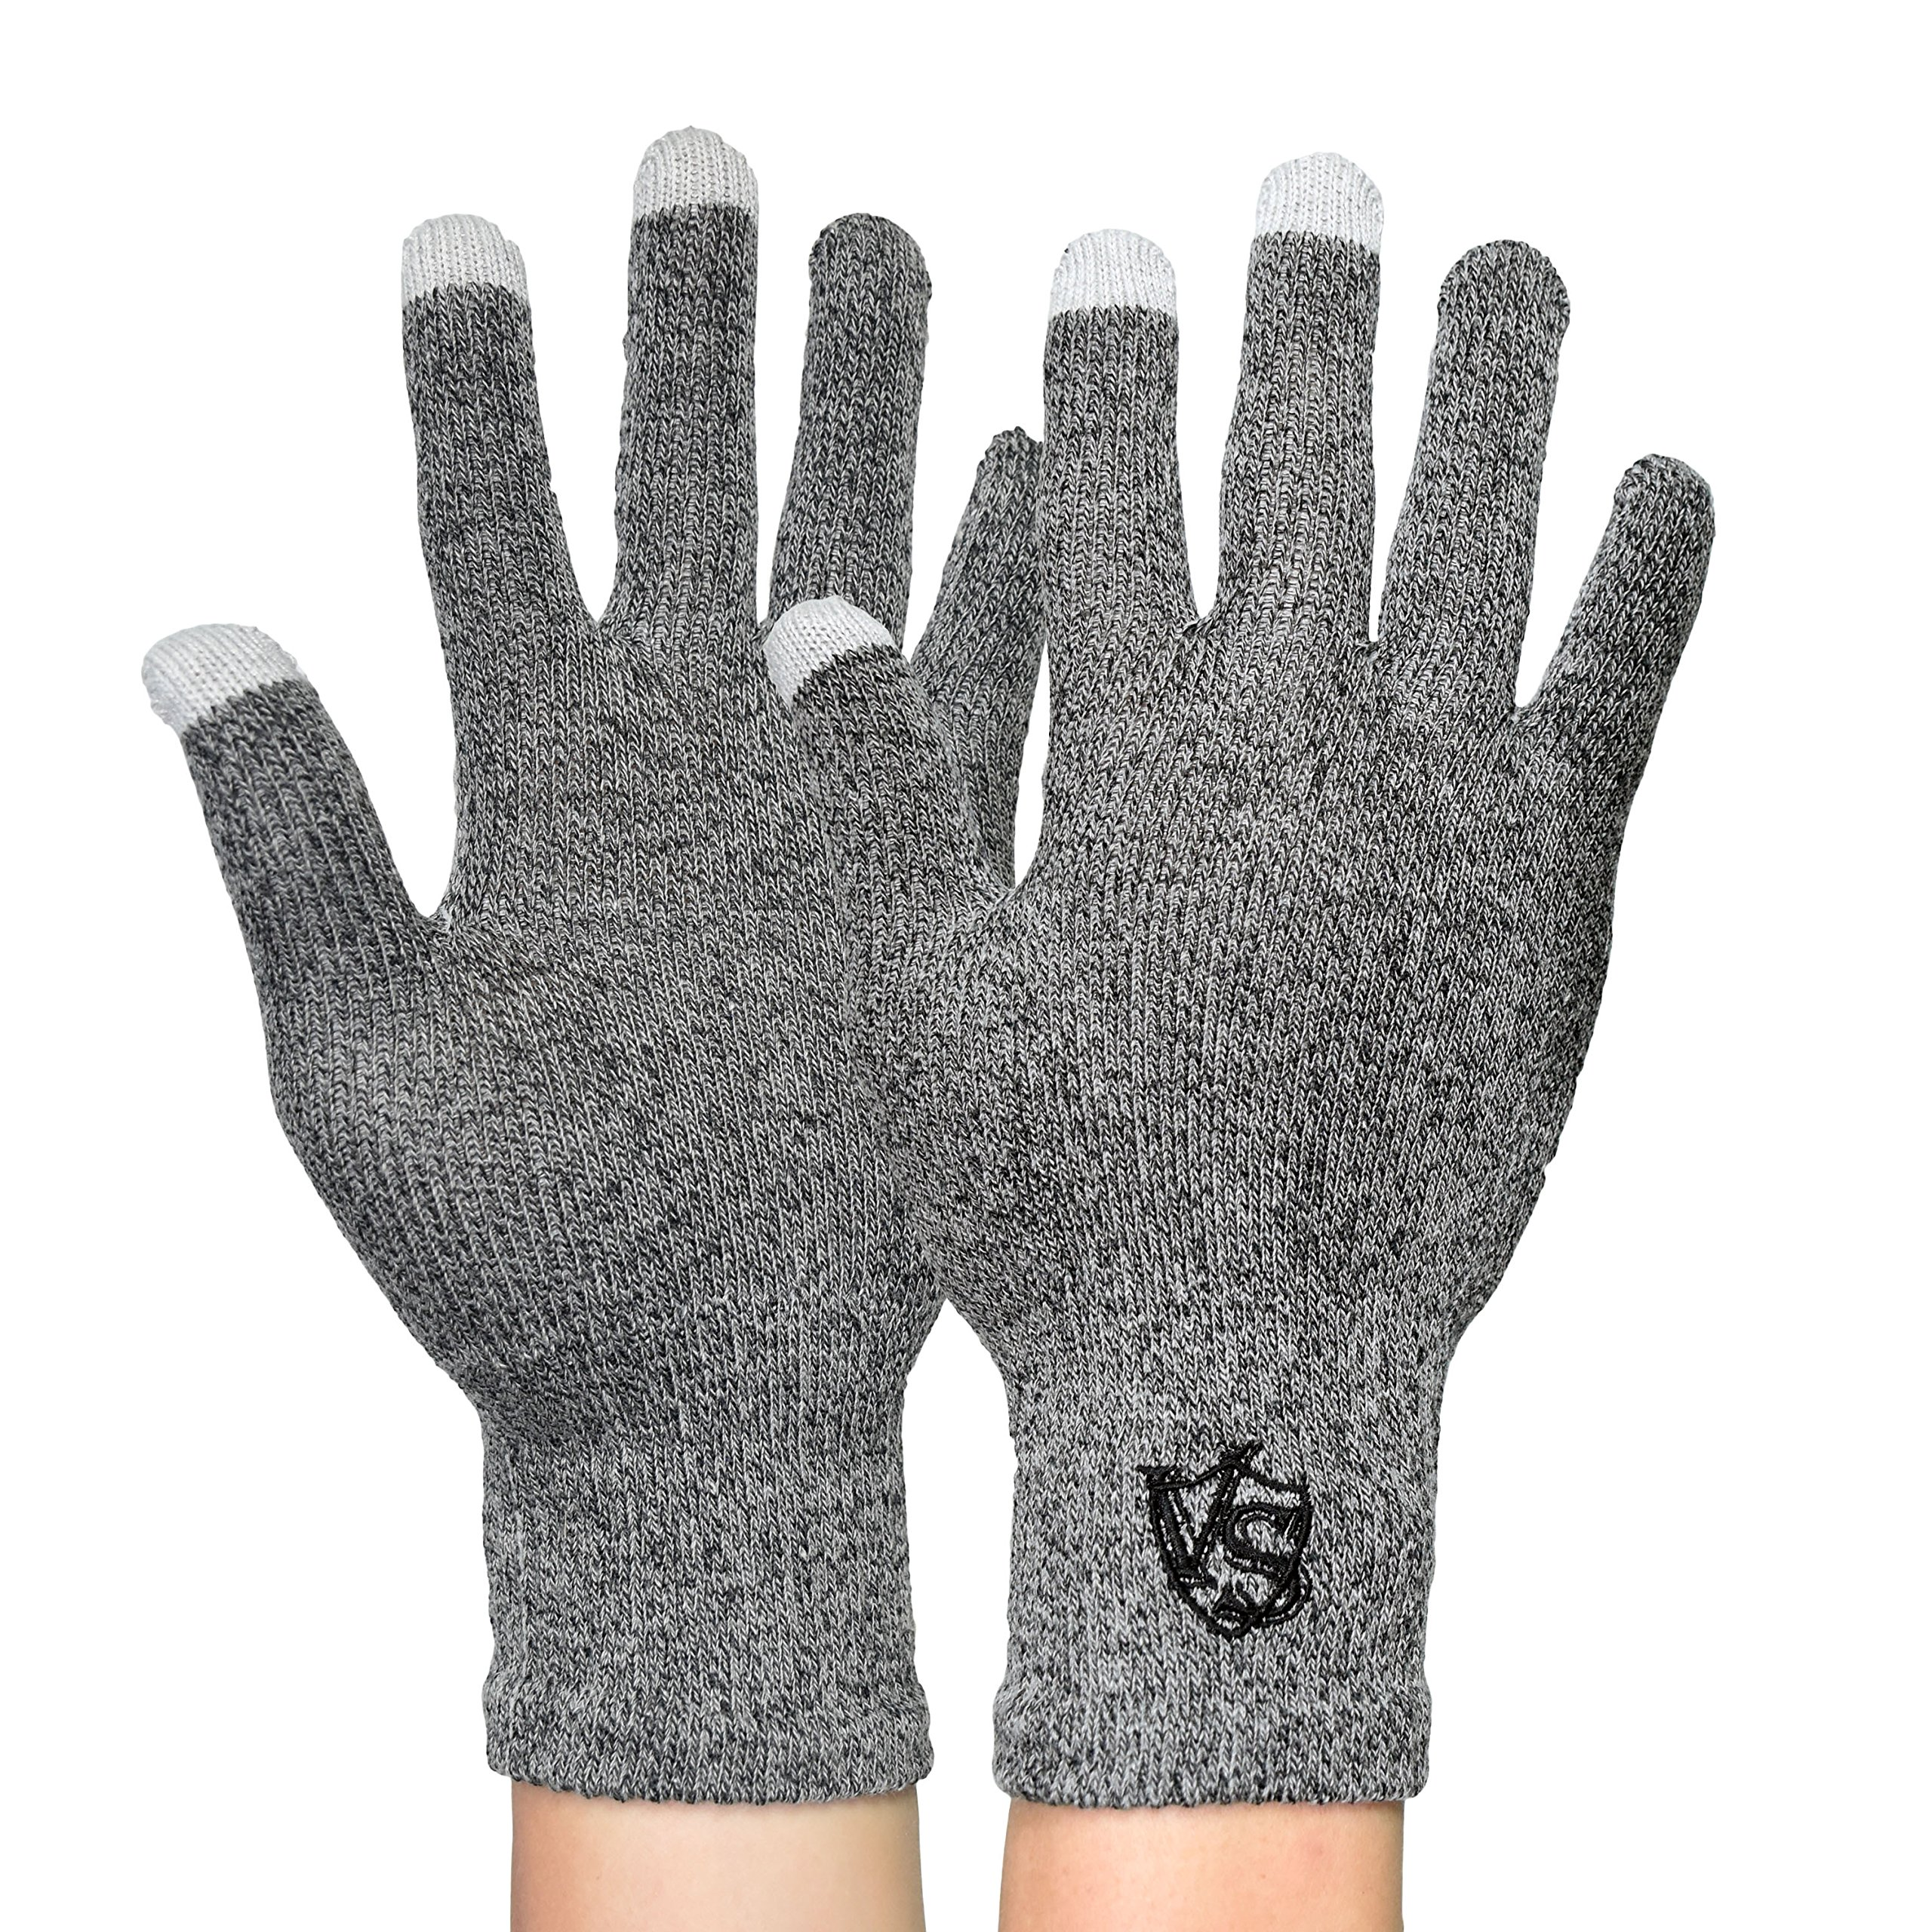 Vital Salveo-Office Stretchy Unisex Recovery Touchscreen, Running, Driving, Texting Gloves for Smartphones (Pair)